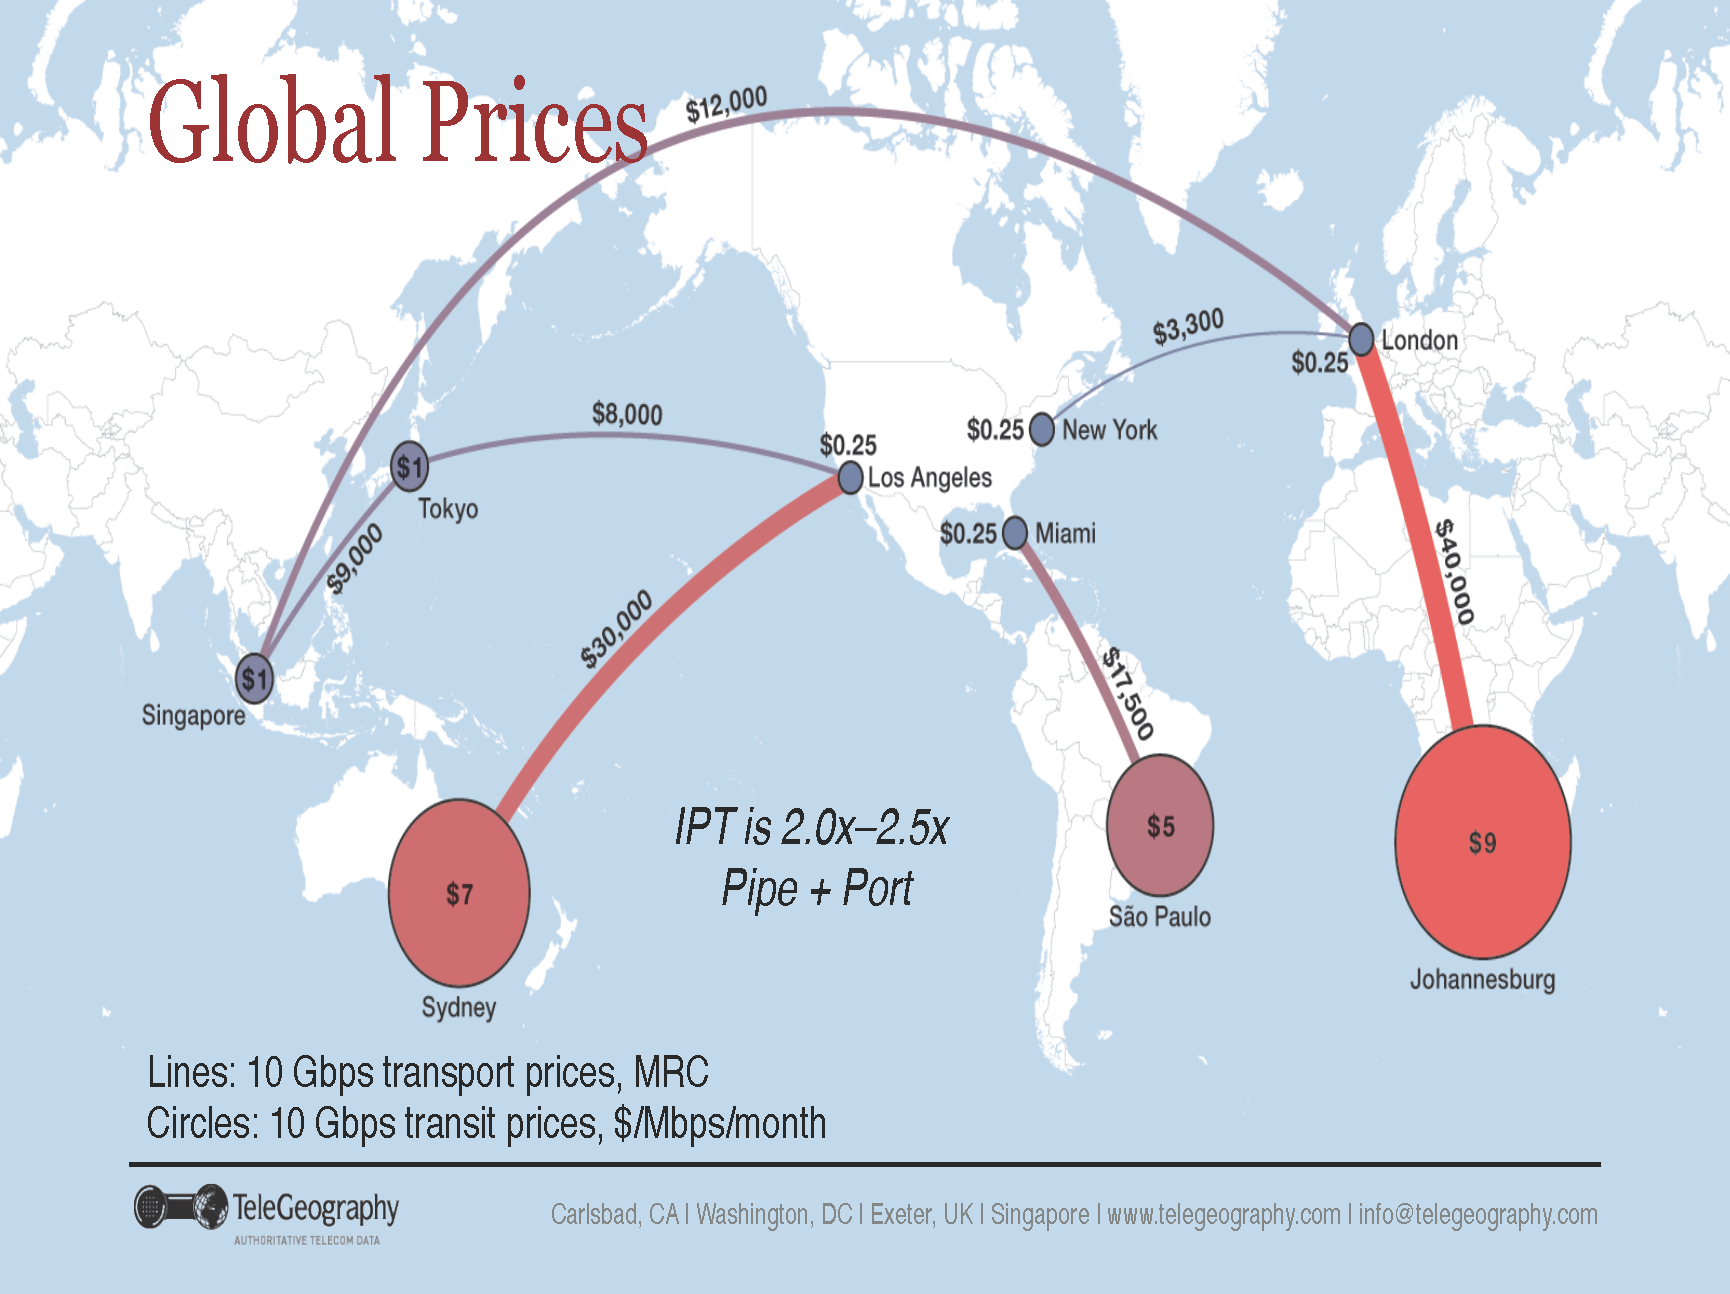 subsea-cable-transport-and-ip-transit-prices-telegeography-picture-3-post-020